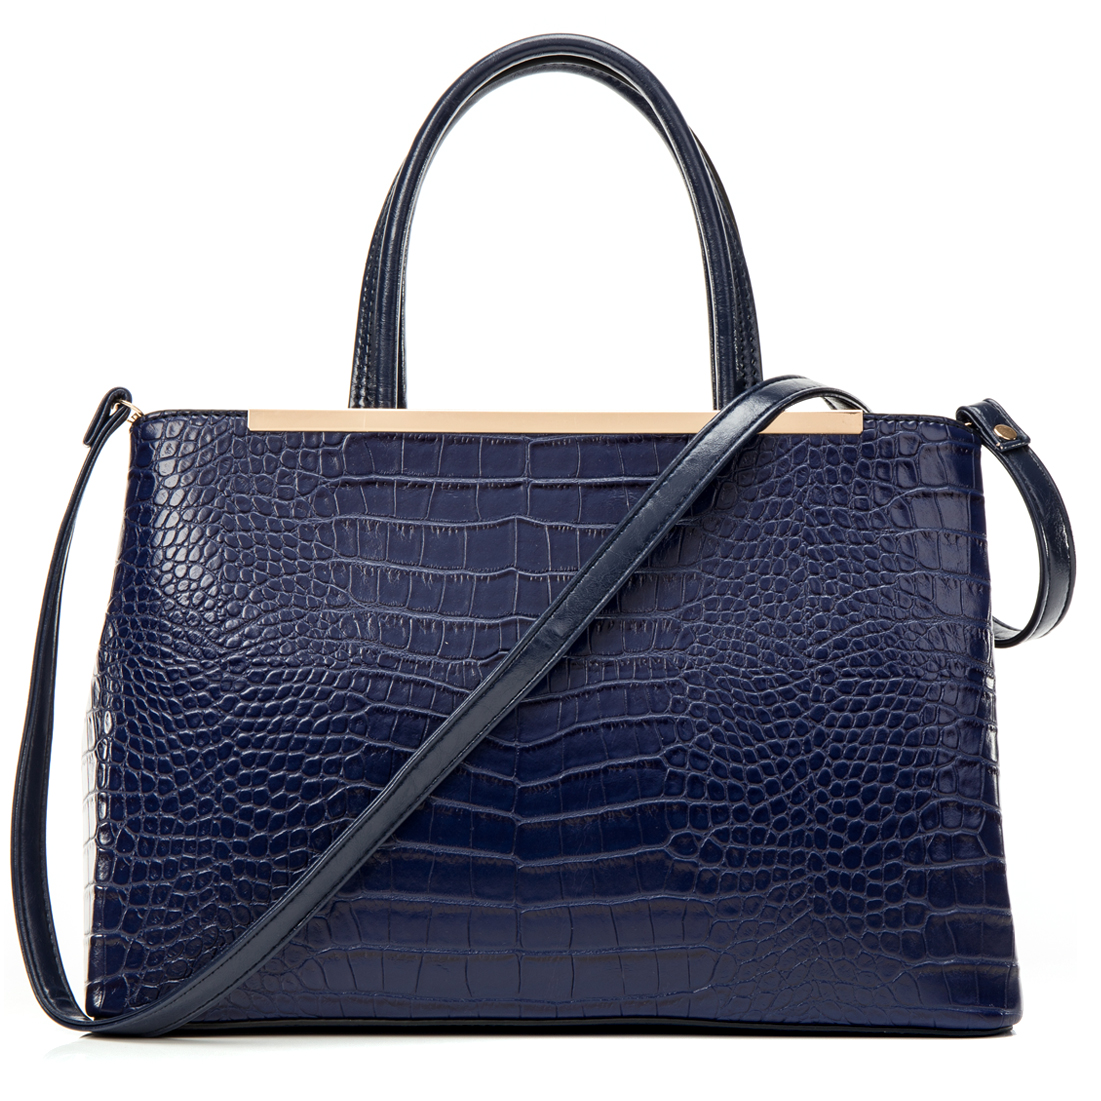 Dasein® Gold Tone Frame Croc Textured Tote w/Removable Shoulder Strap